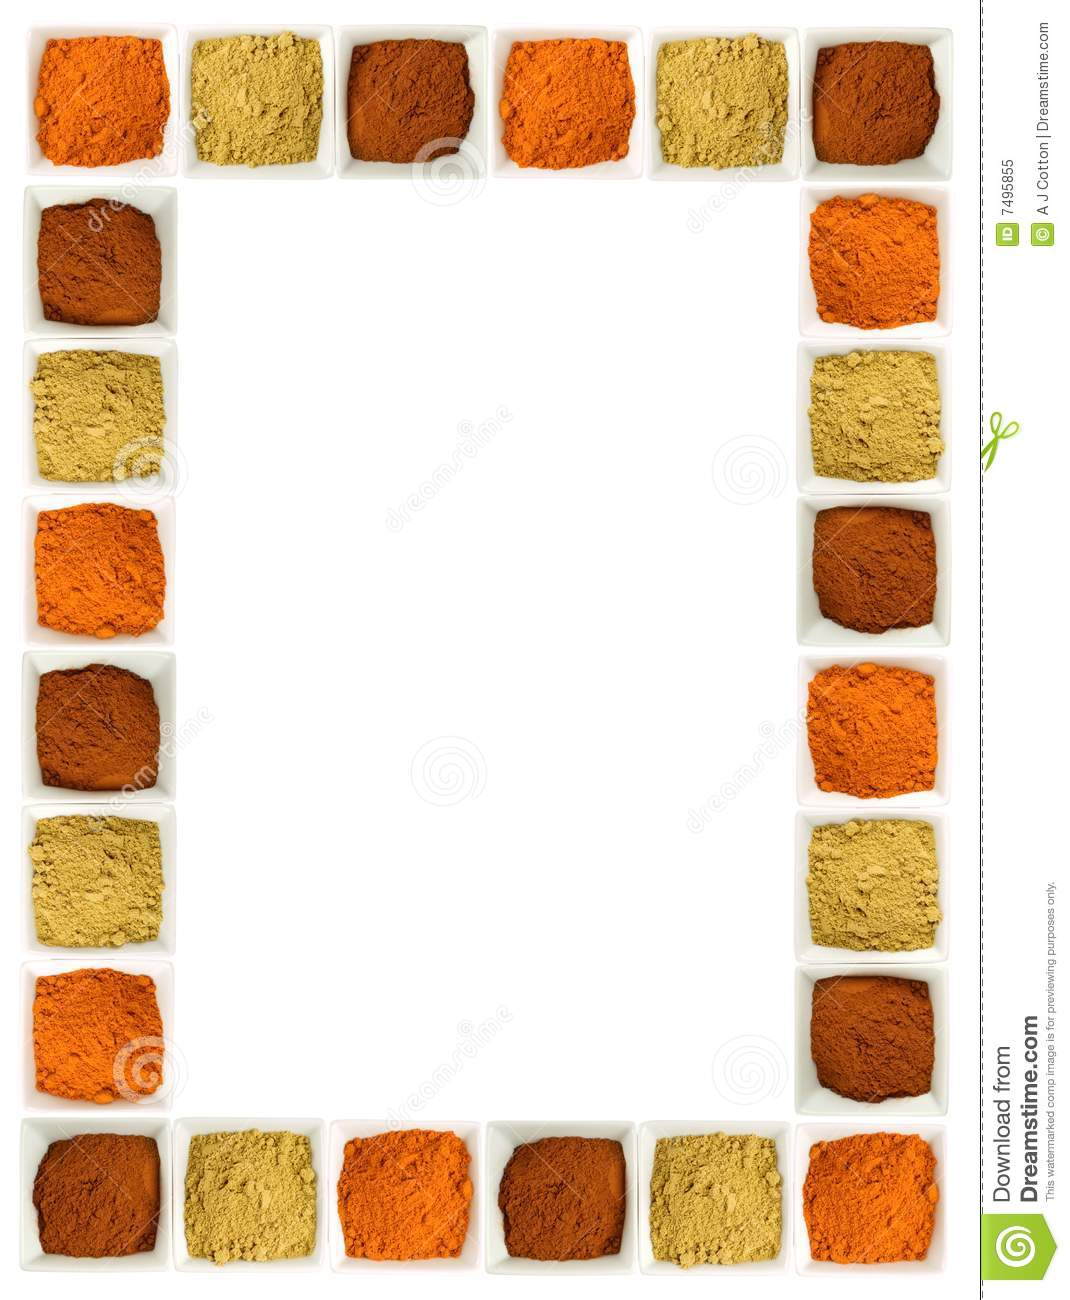 Colorful Spices Food Page Border Stock Image Image of clean